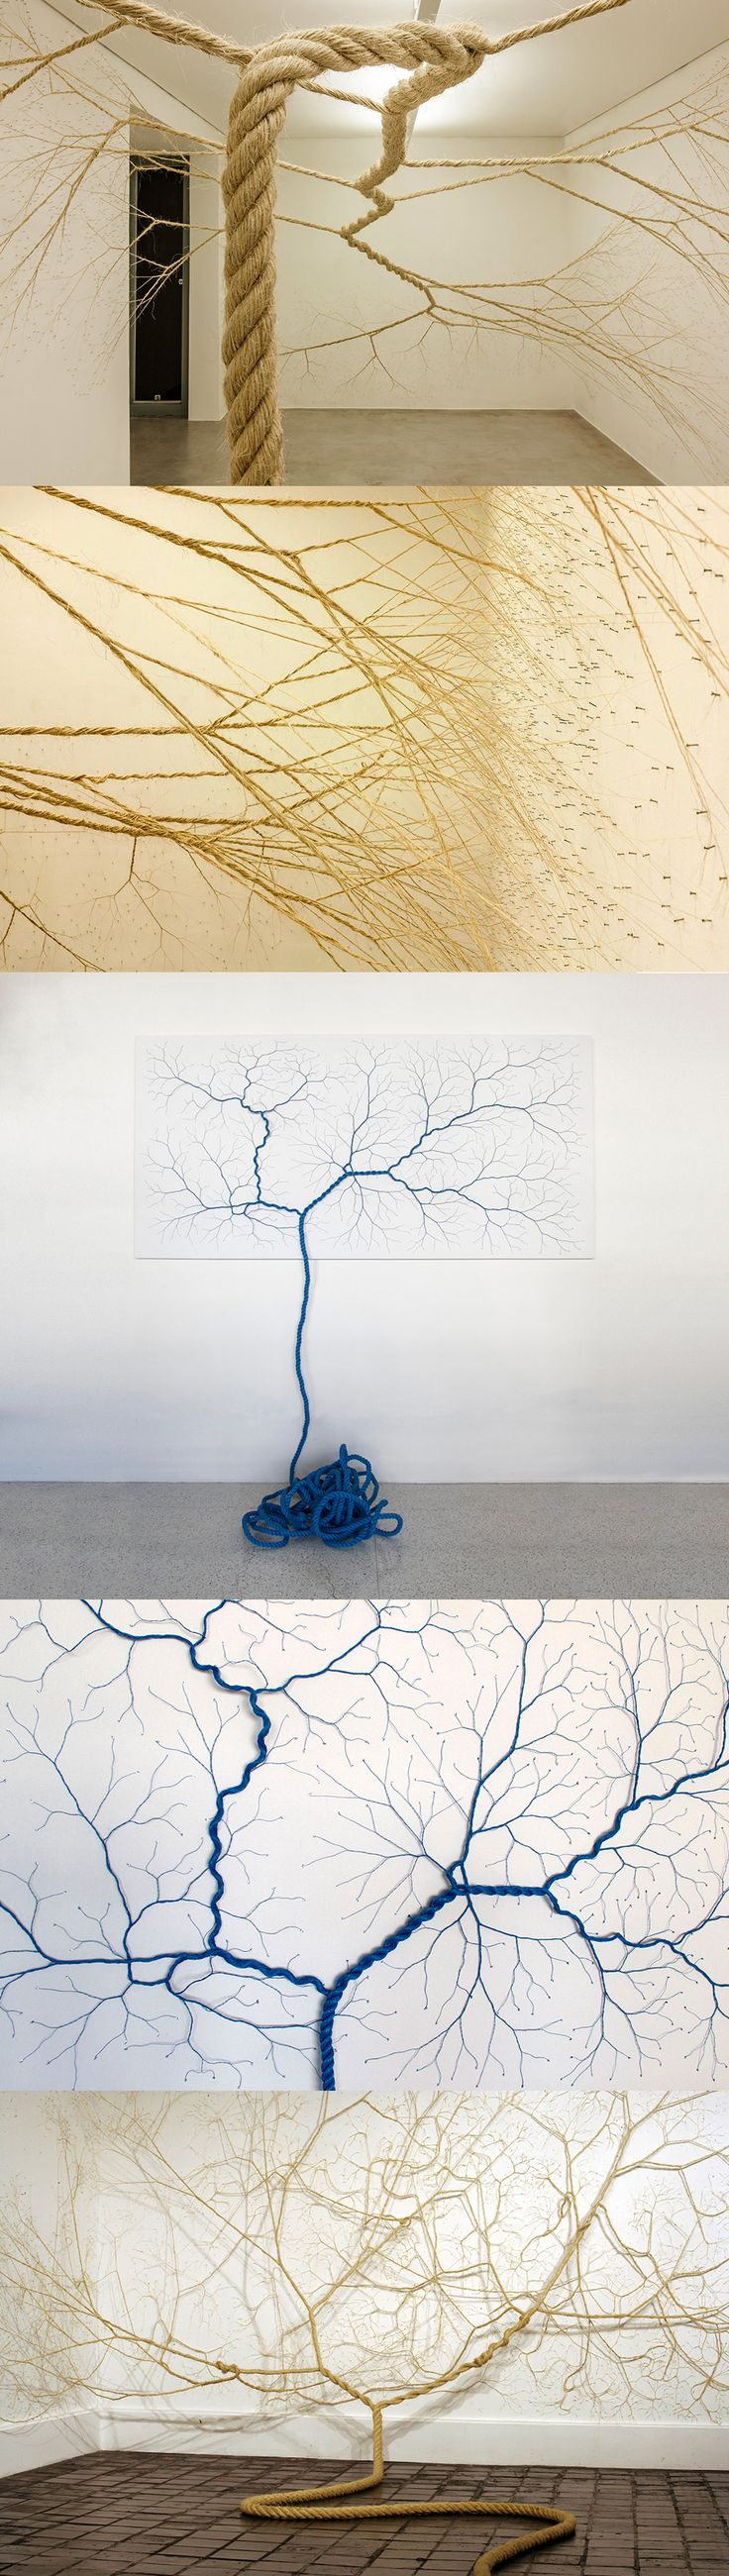 Janiana Mello and Daniel Landini: Untwisted Ropes Tacked to Gallery Walls Appear to Sprout like Trees